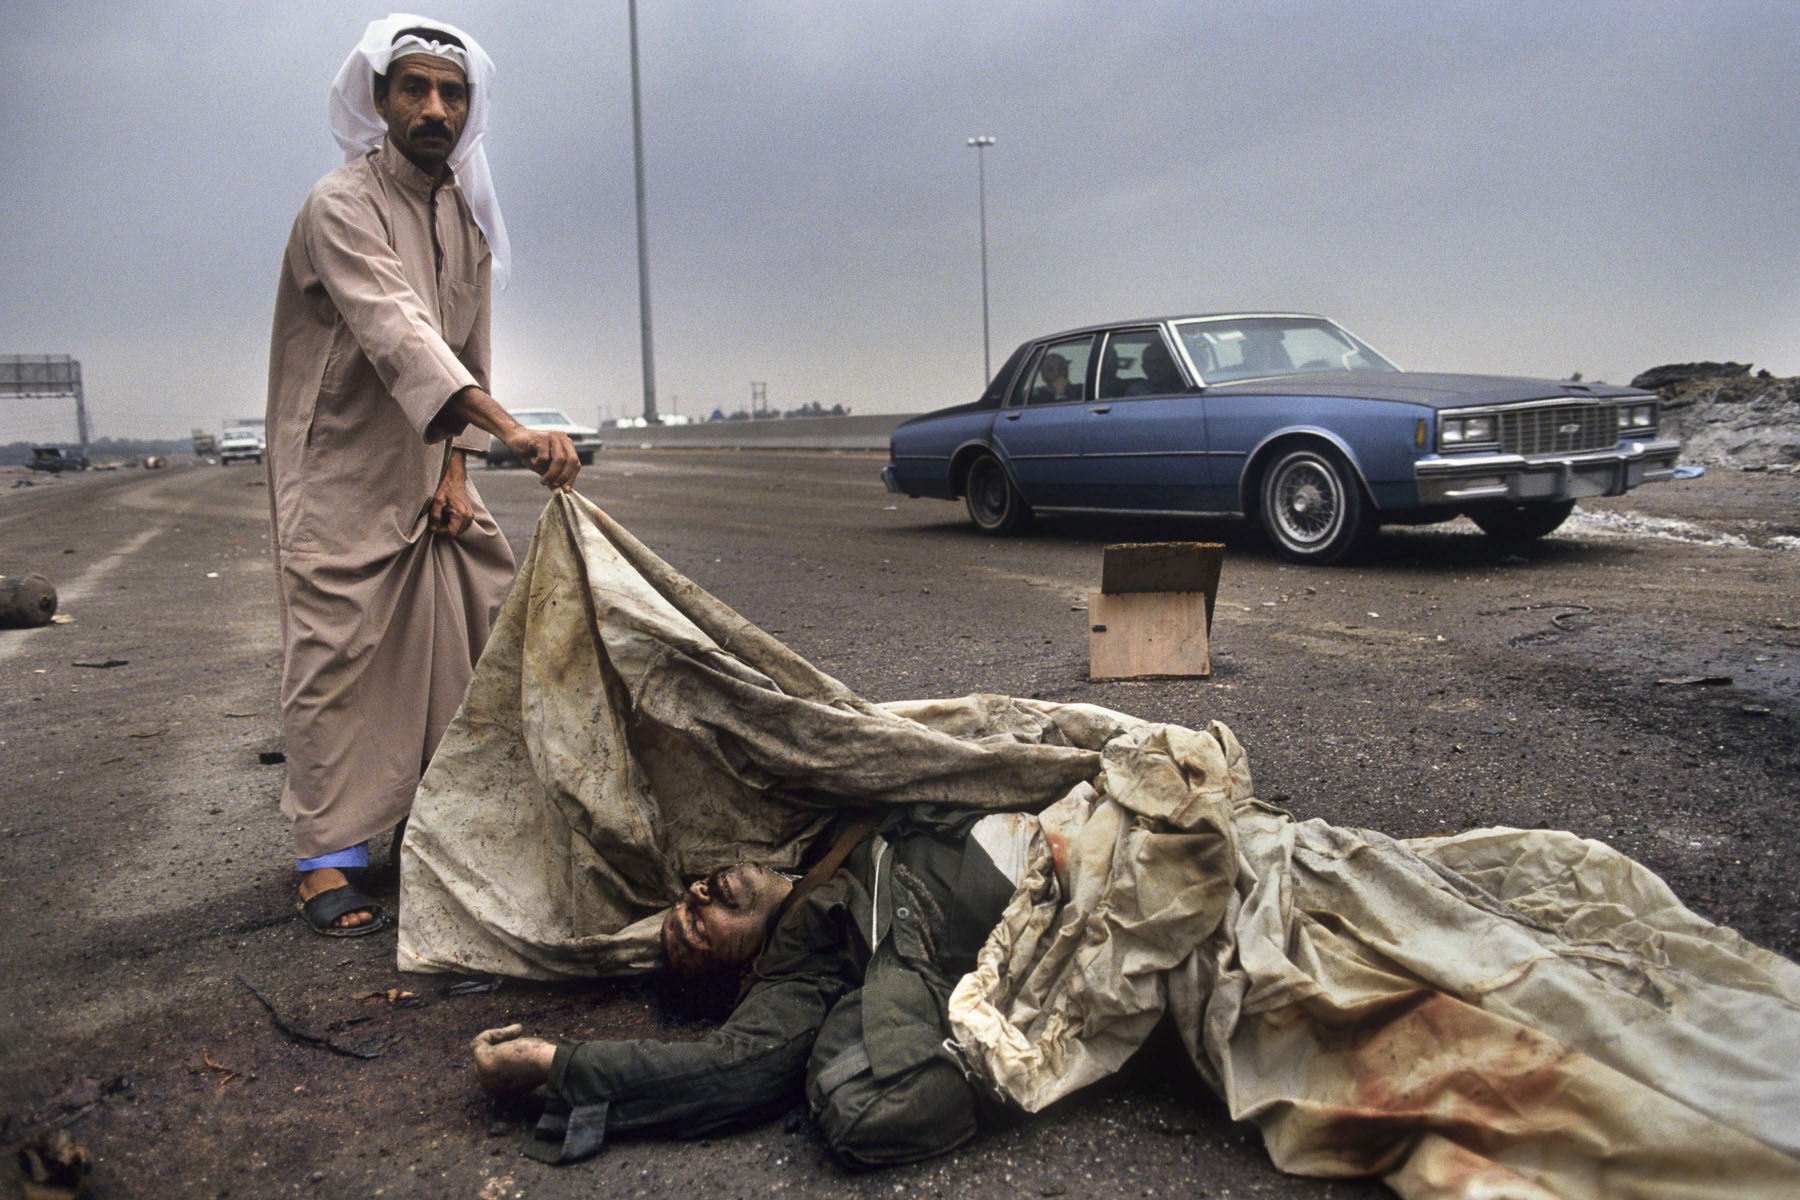 A Kuwaiti man showing an Iraqi soldier's corpse on the road to Basra in February 1991